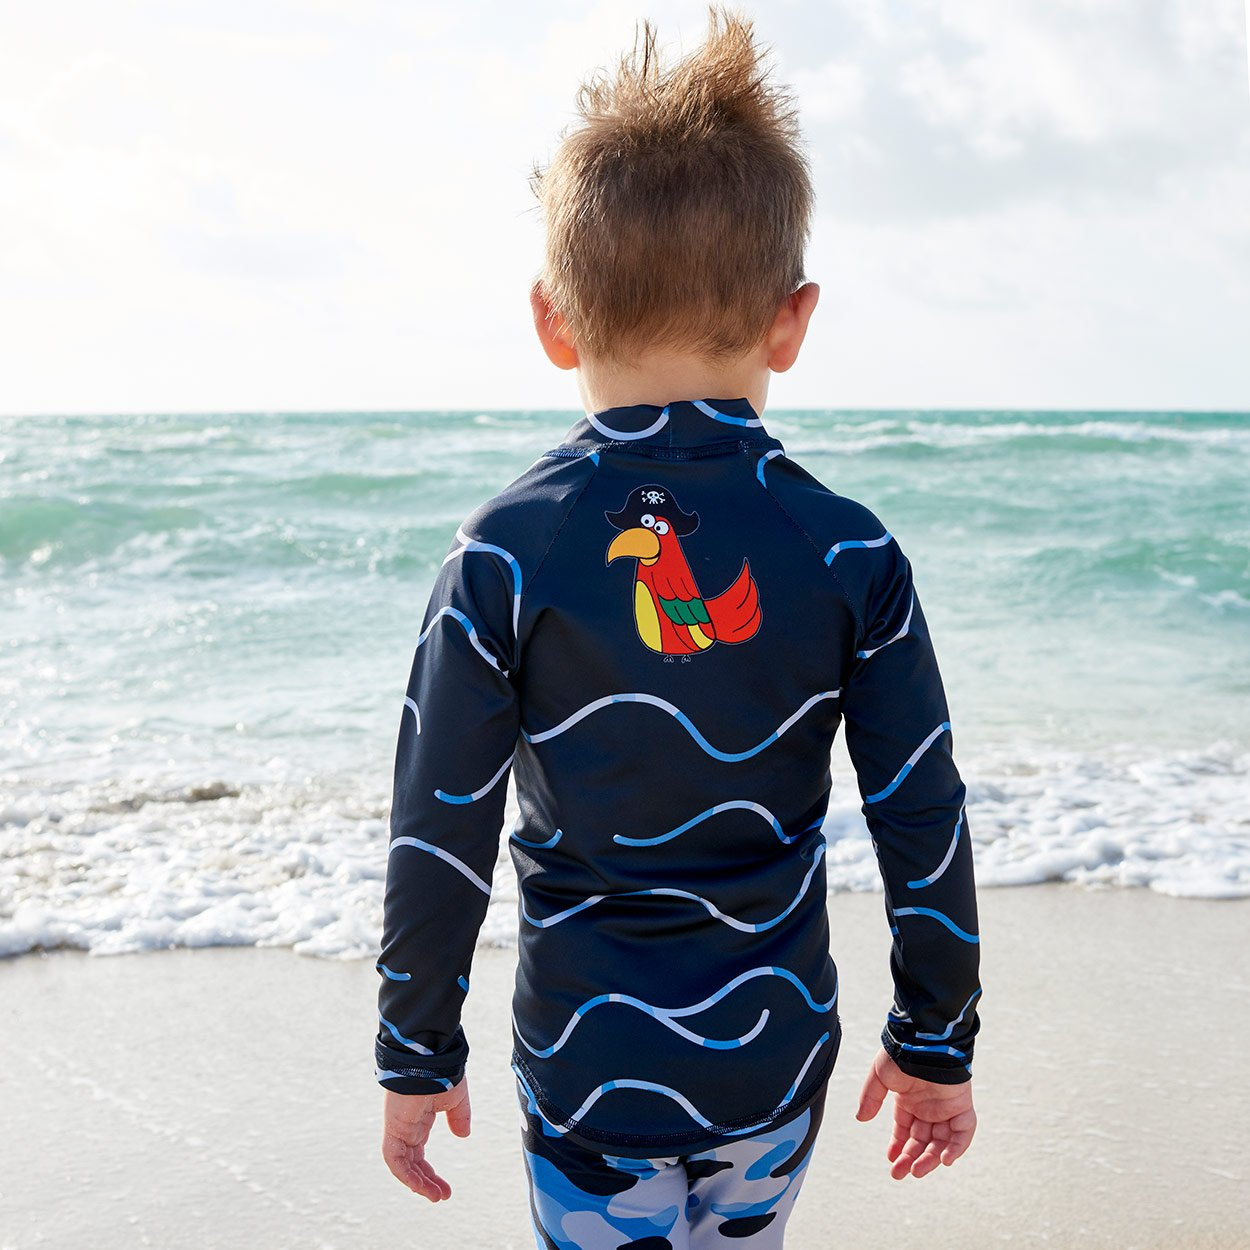 Green Camo 2 Pc Rash Guard Set Boys Wetsuit On The Beach Sunpoplife